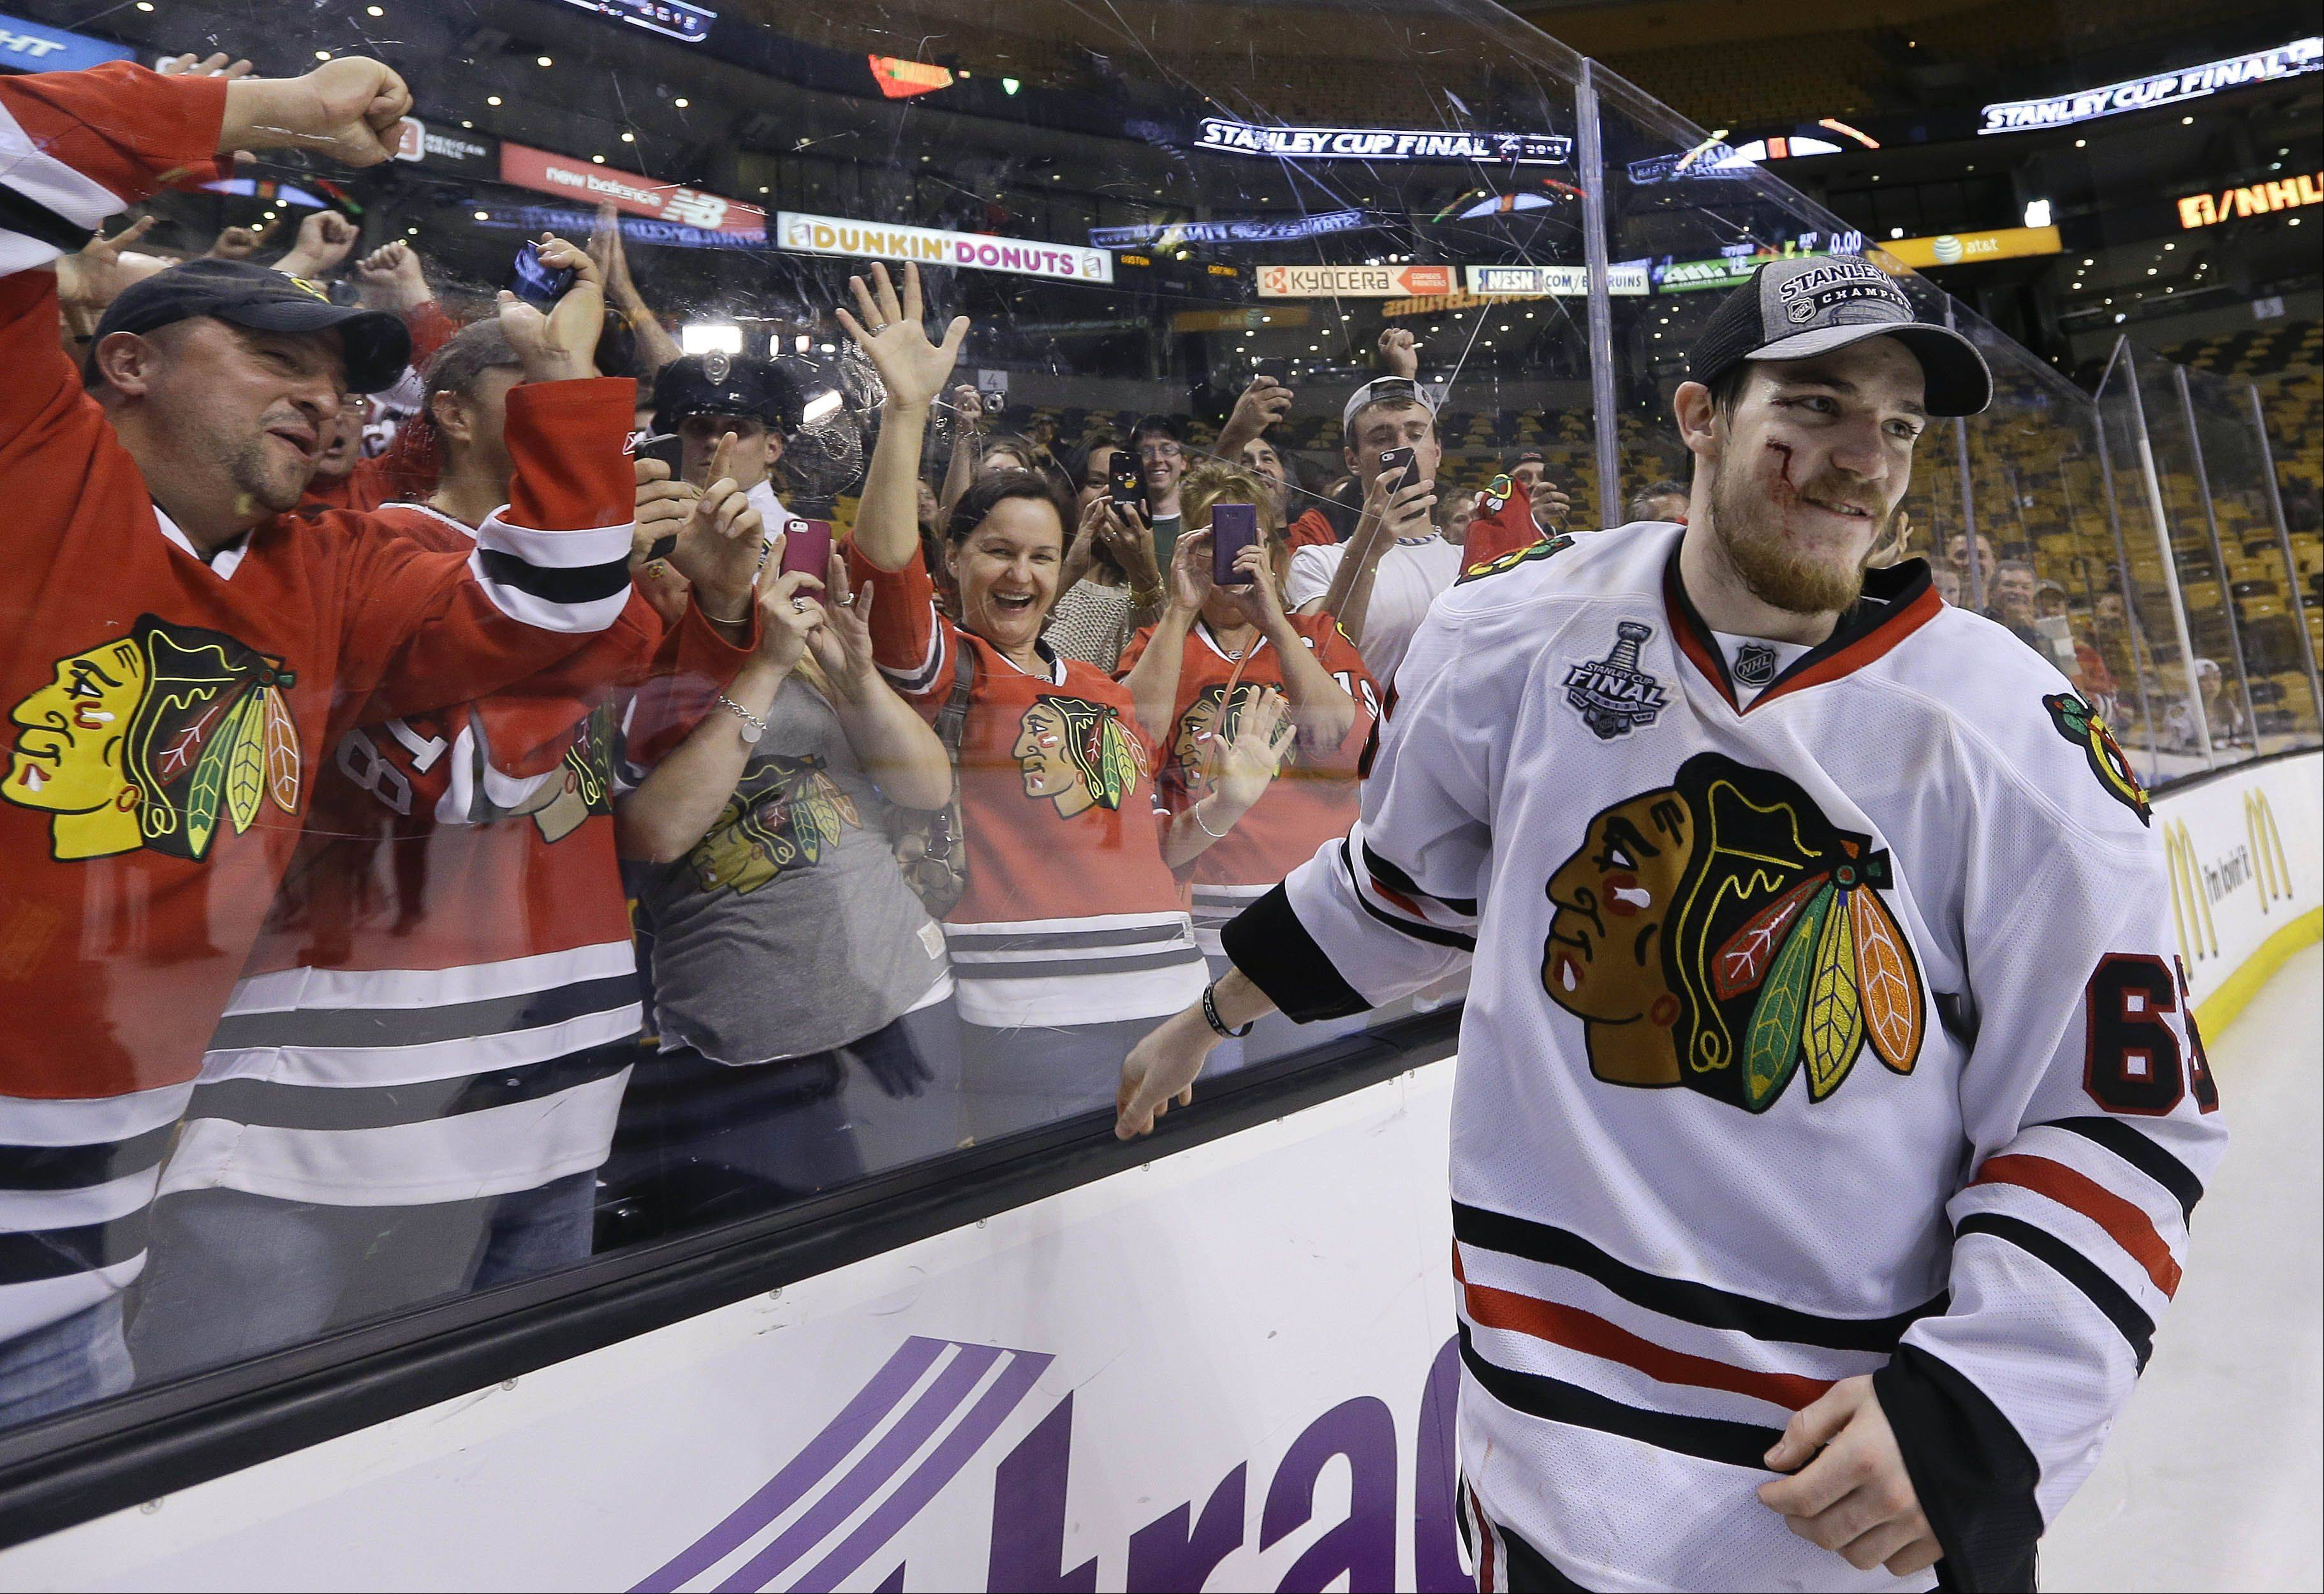 Chicago Blackhawks center Andrew Shaw skates from the glass after celebrating with fans after the Blackhawks beat the Boston Bruins in Game 6 of the NHL Stanley Cup Finals Monday.